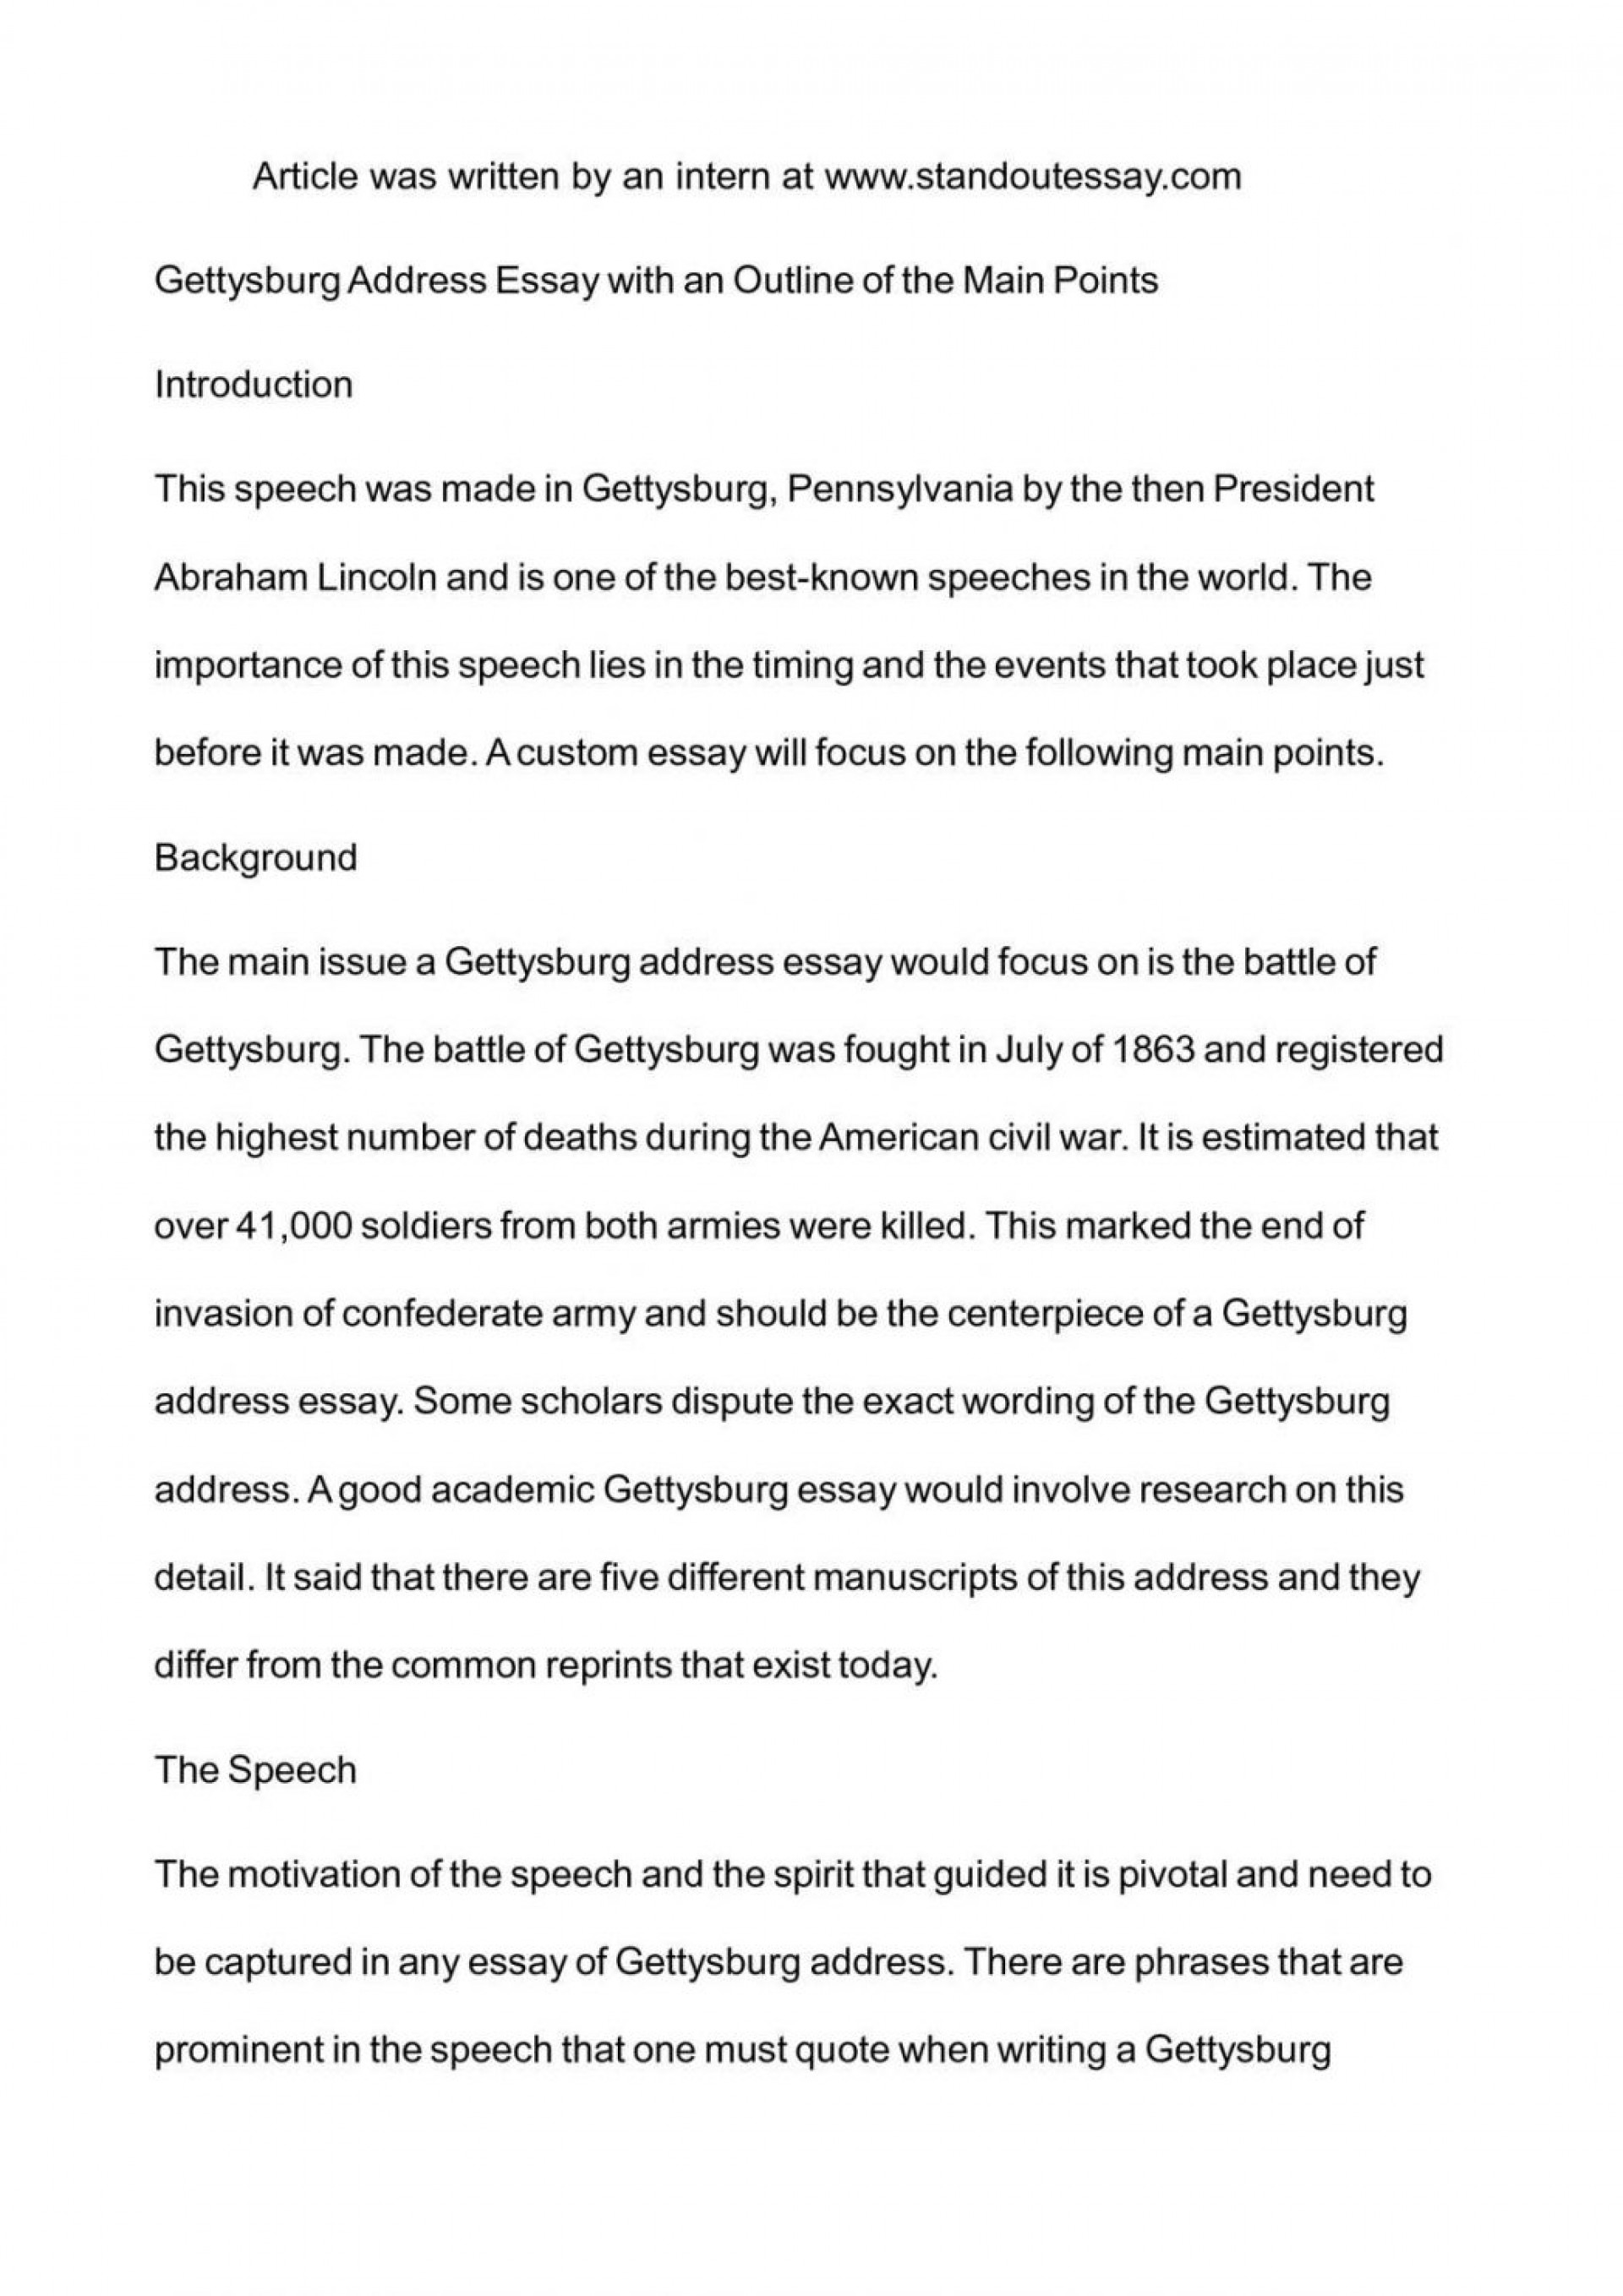 gettysburg address meaning today